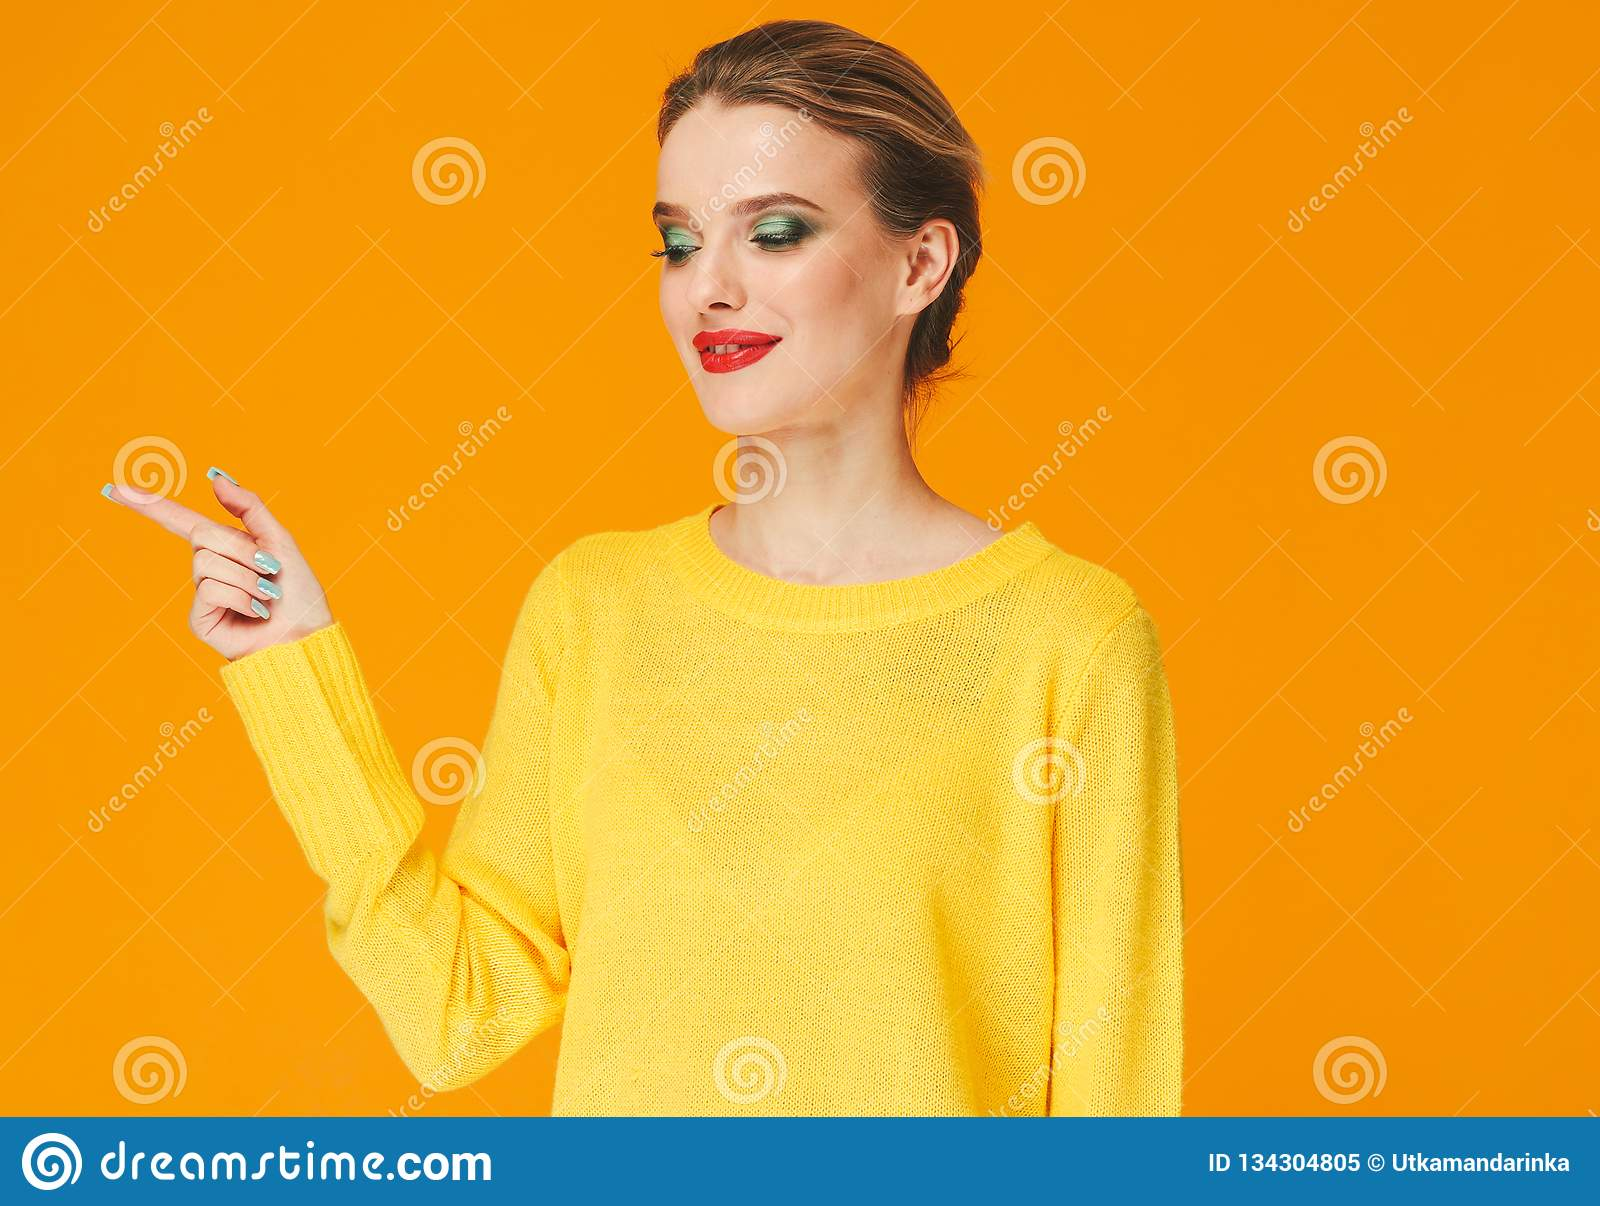 Colorful makeup woman red lips in yellow clothes on color happy summer fashion background manicured nails